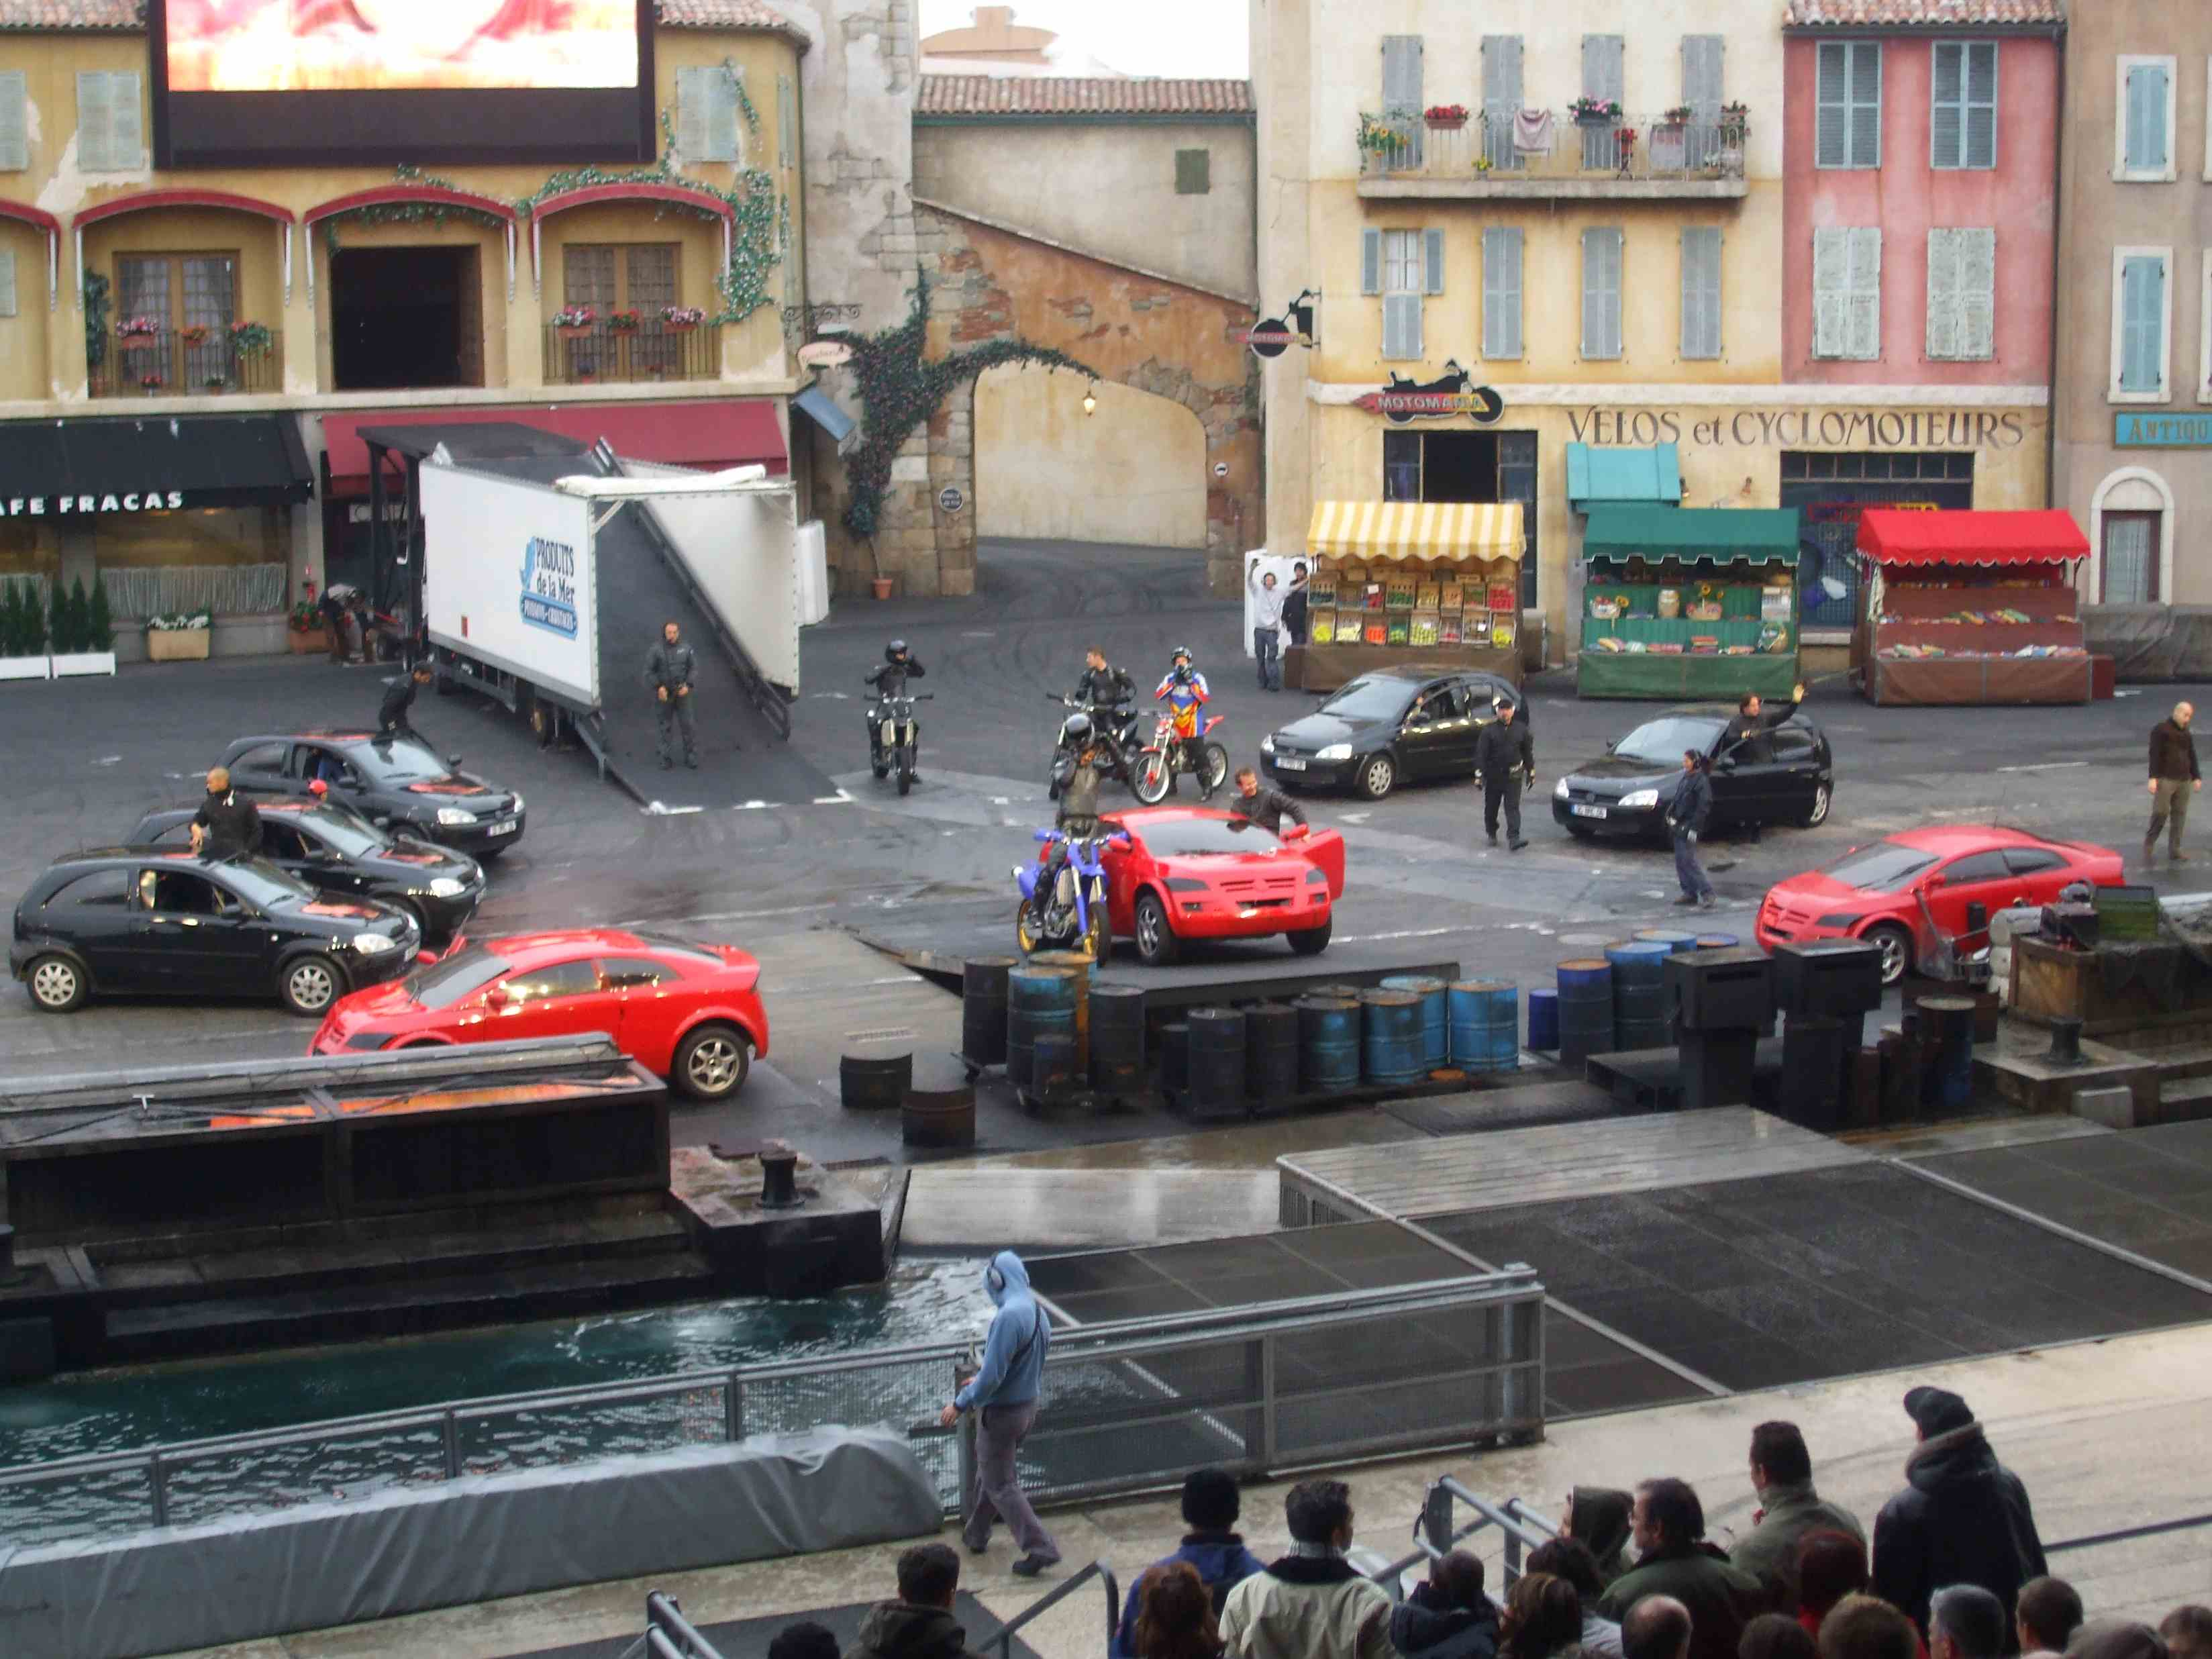 Disneyland-moteur-action-spectacle